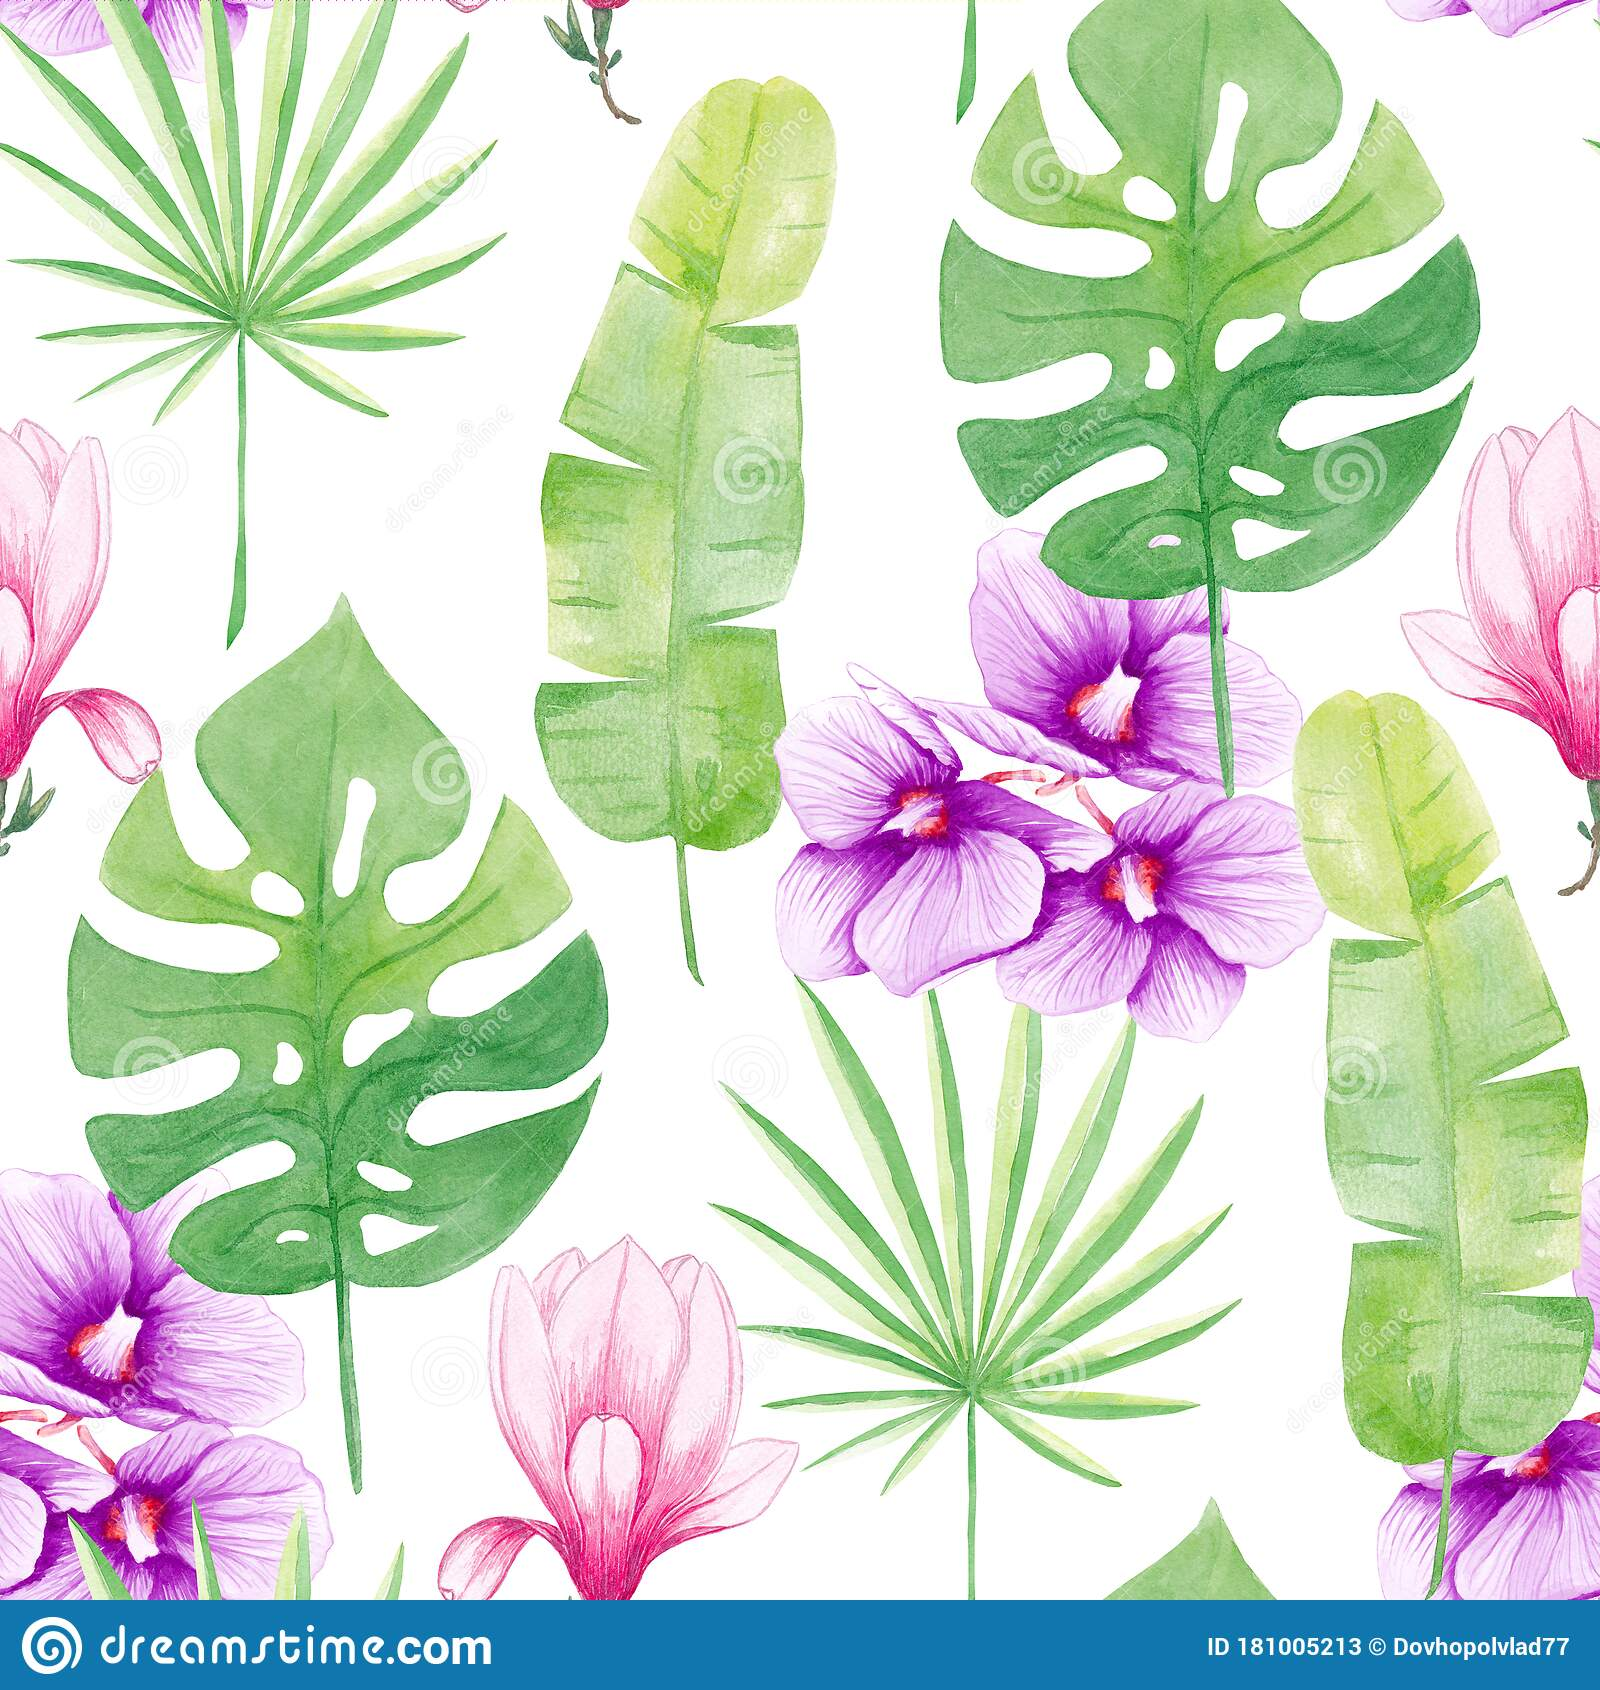 Watercolor Seamless Pattern Tropical Leaves Orhidea And Magnolia Trendy Floral Illustration Isolated On White Stock Illustration Illustration Of Drawing Nature 181005213 Vector art, clipart and stock vectors. dreamstime com